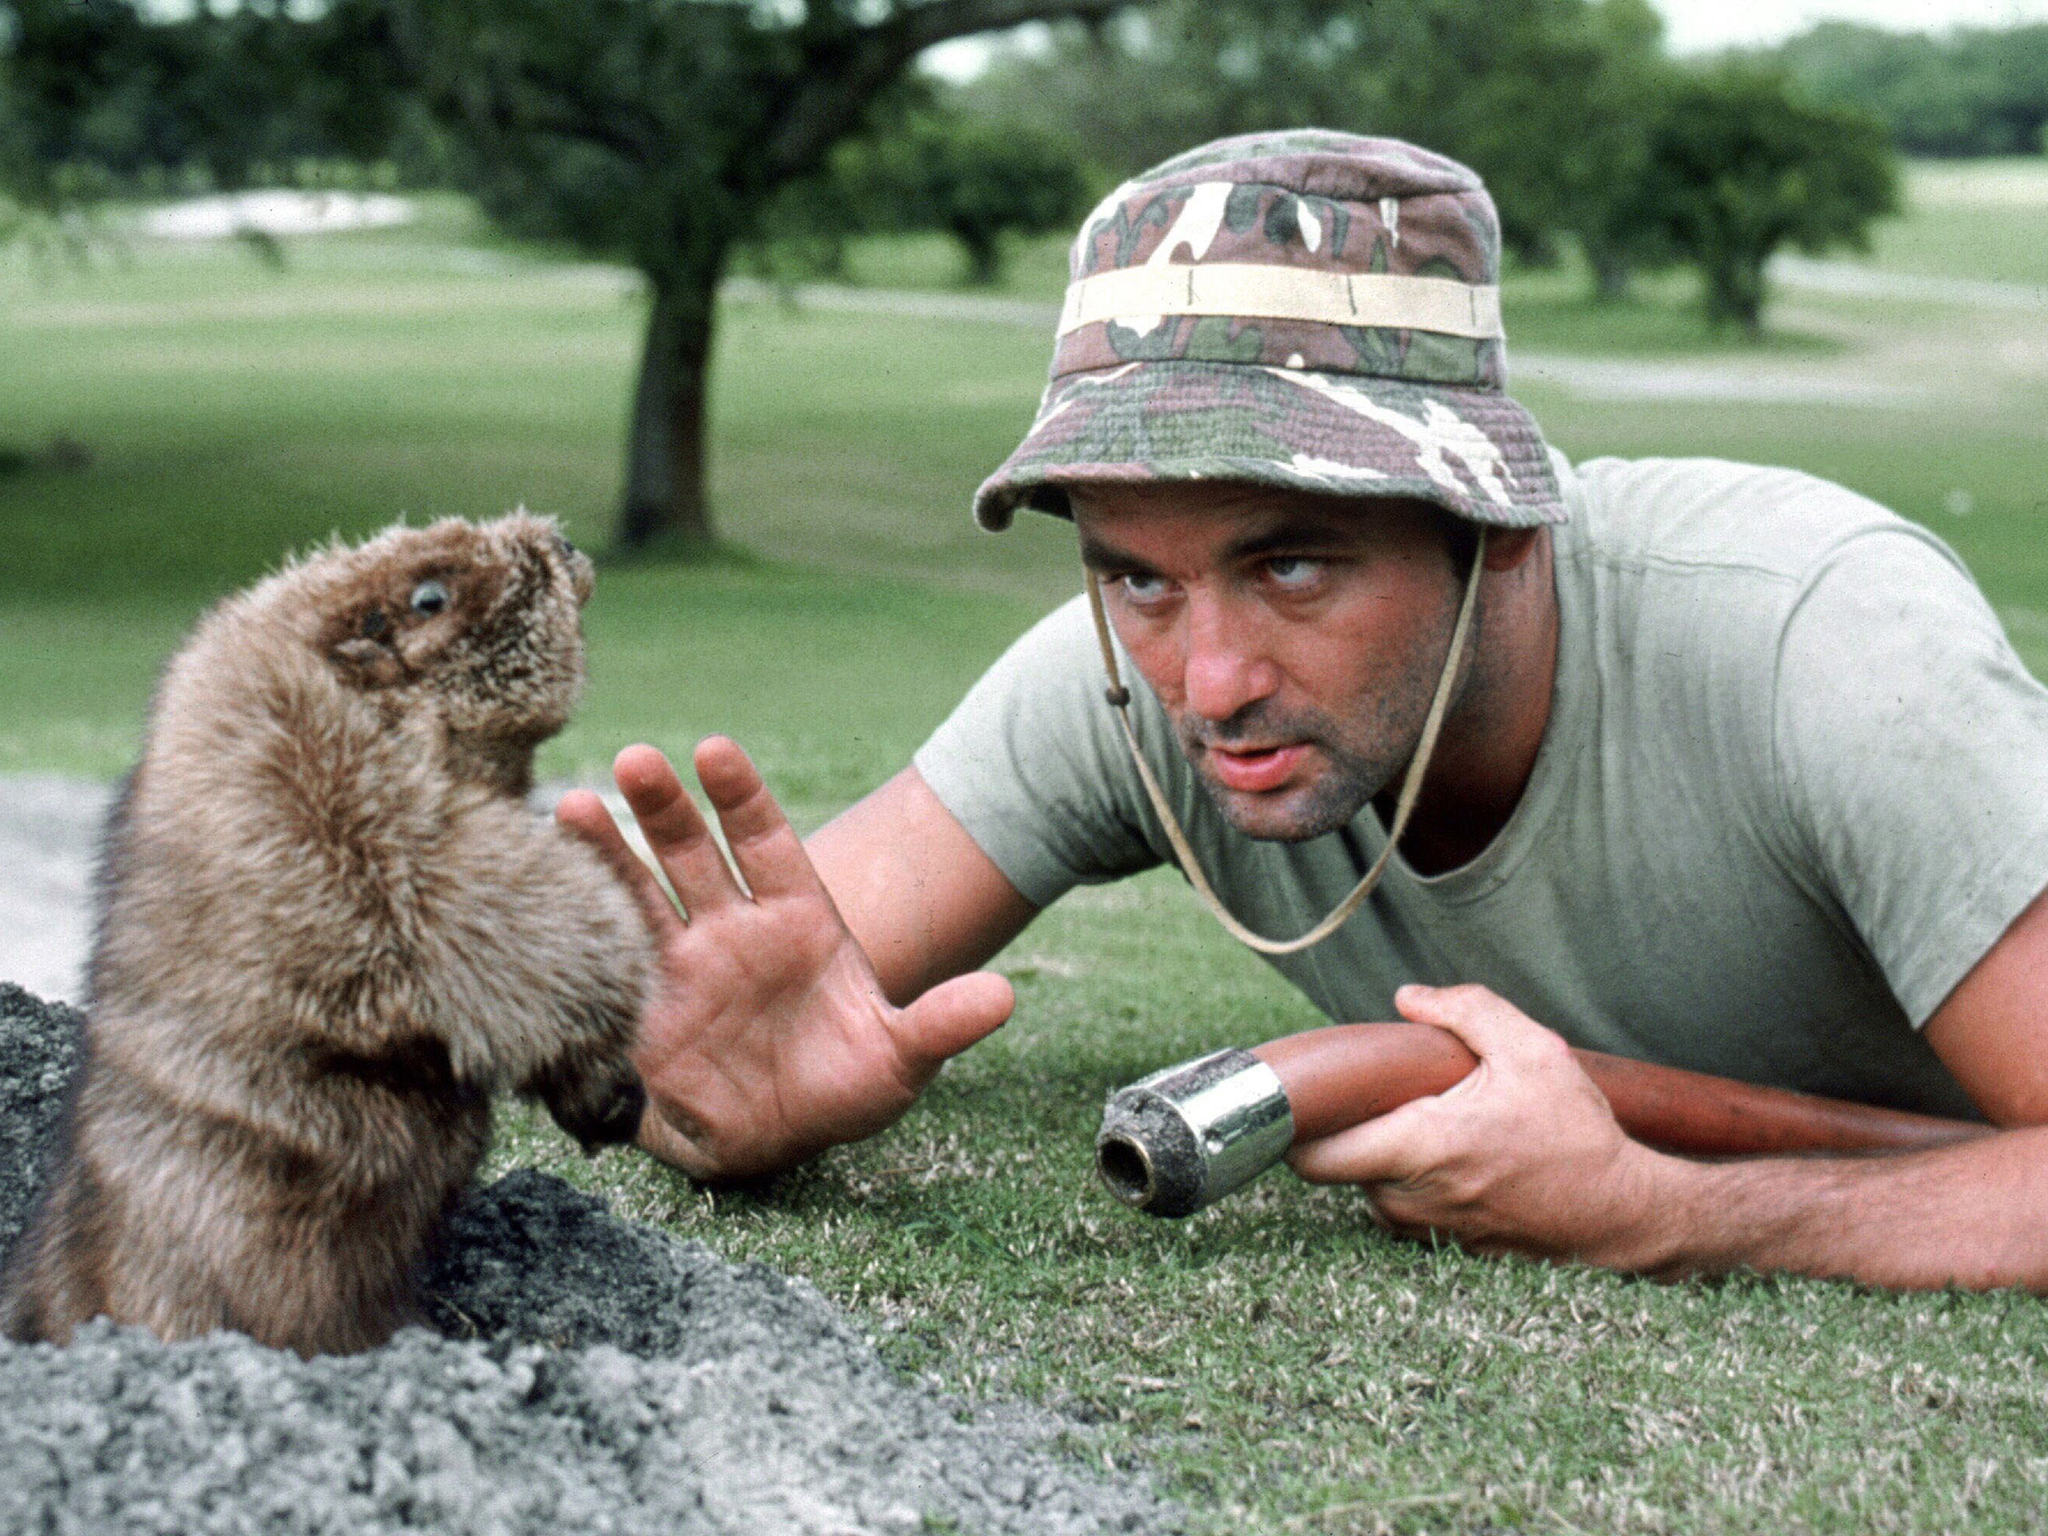 Murray faces off against a gopher in 'Caddyshack'